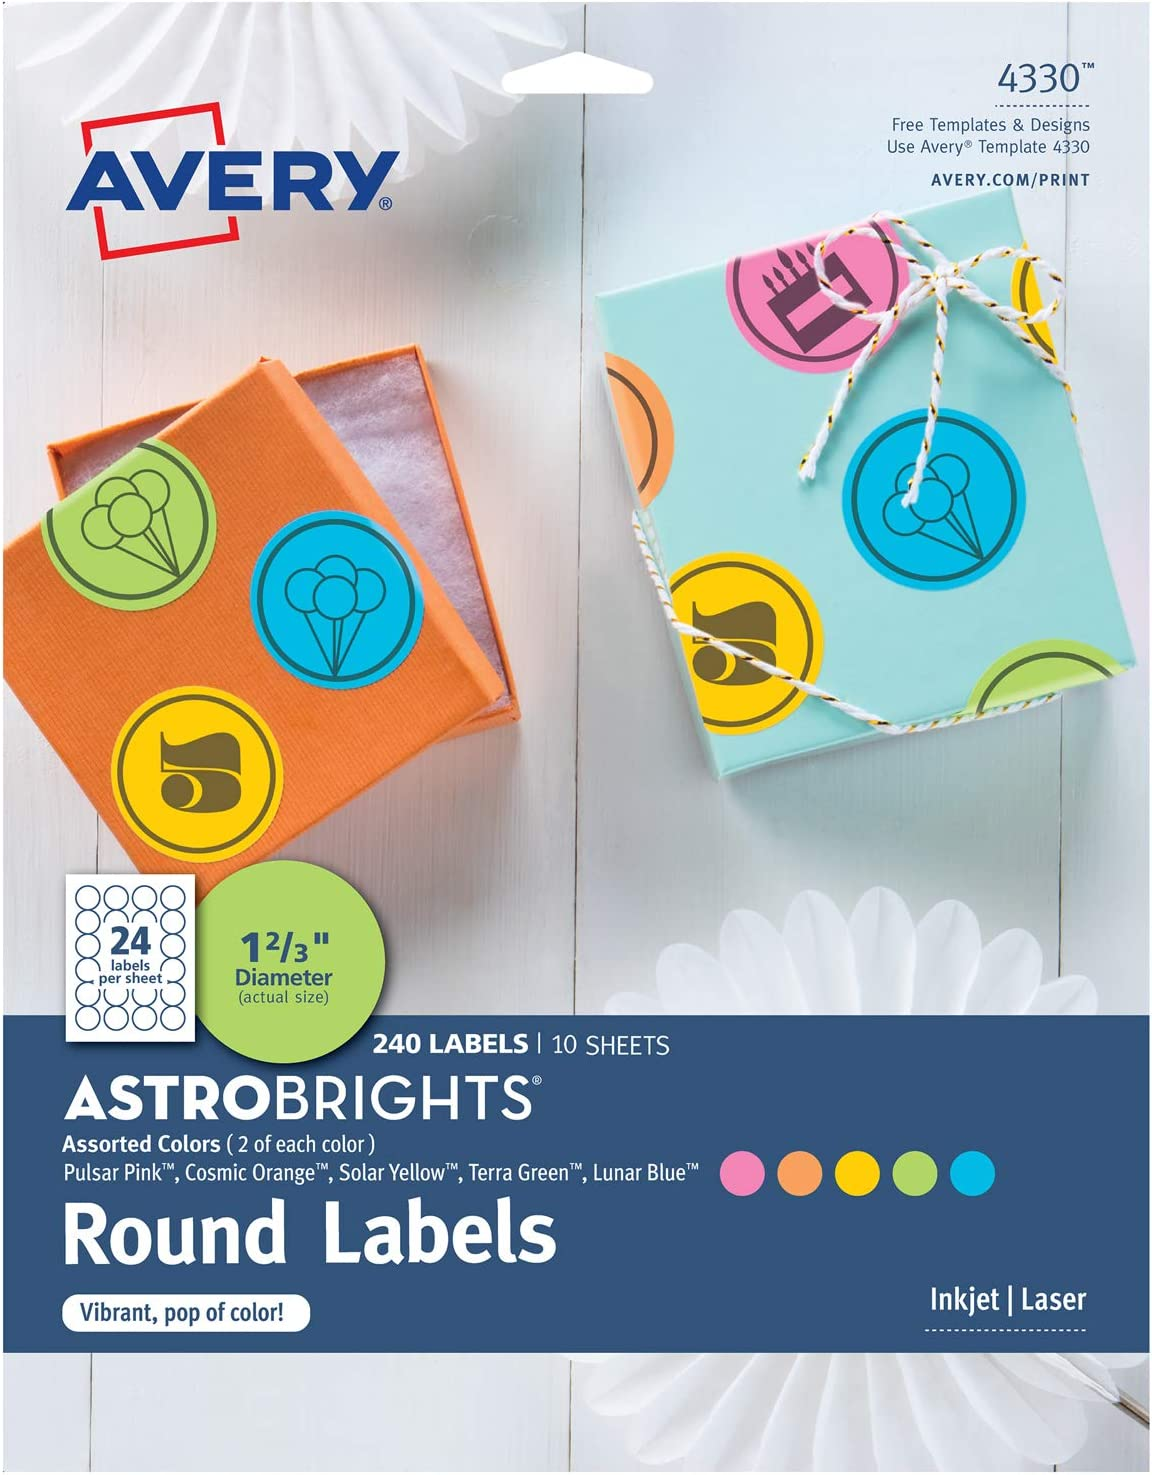 """Avery Astrobrights Round Labels, Assorted Colors, 1-2/3"""" Diameter, 240 Labels - Make Custom Stickers (4330)"""